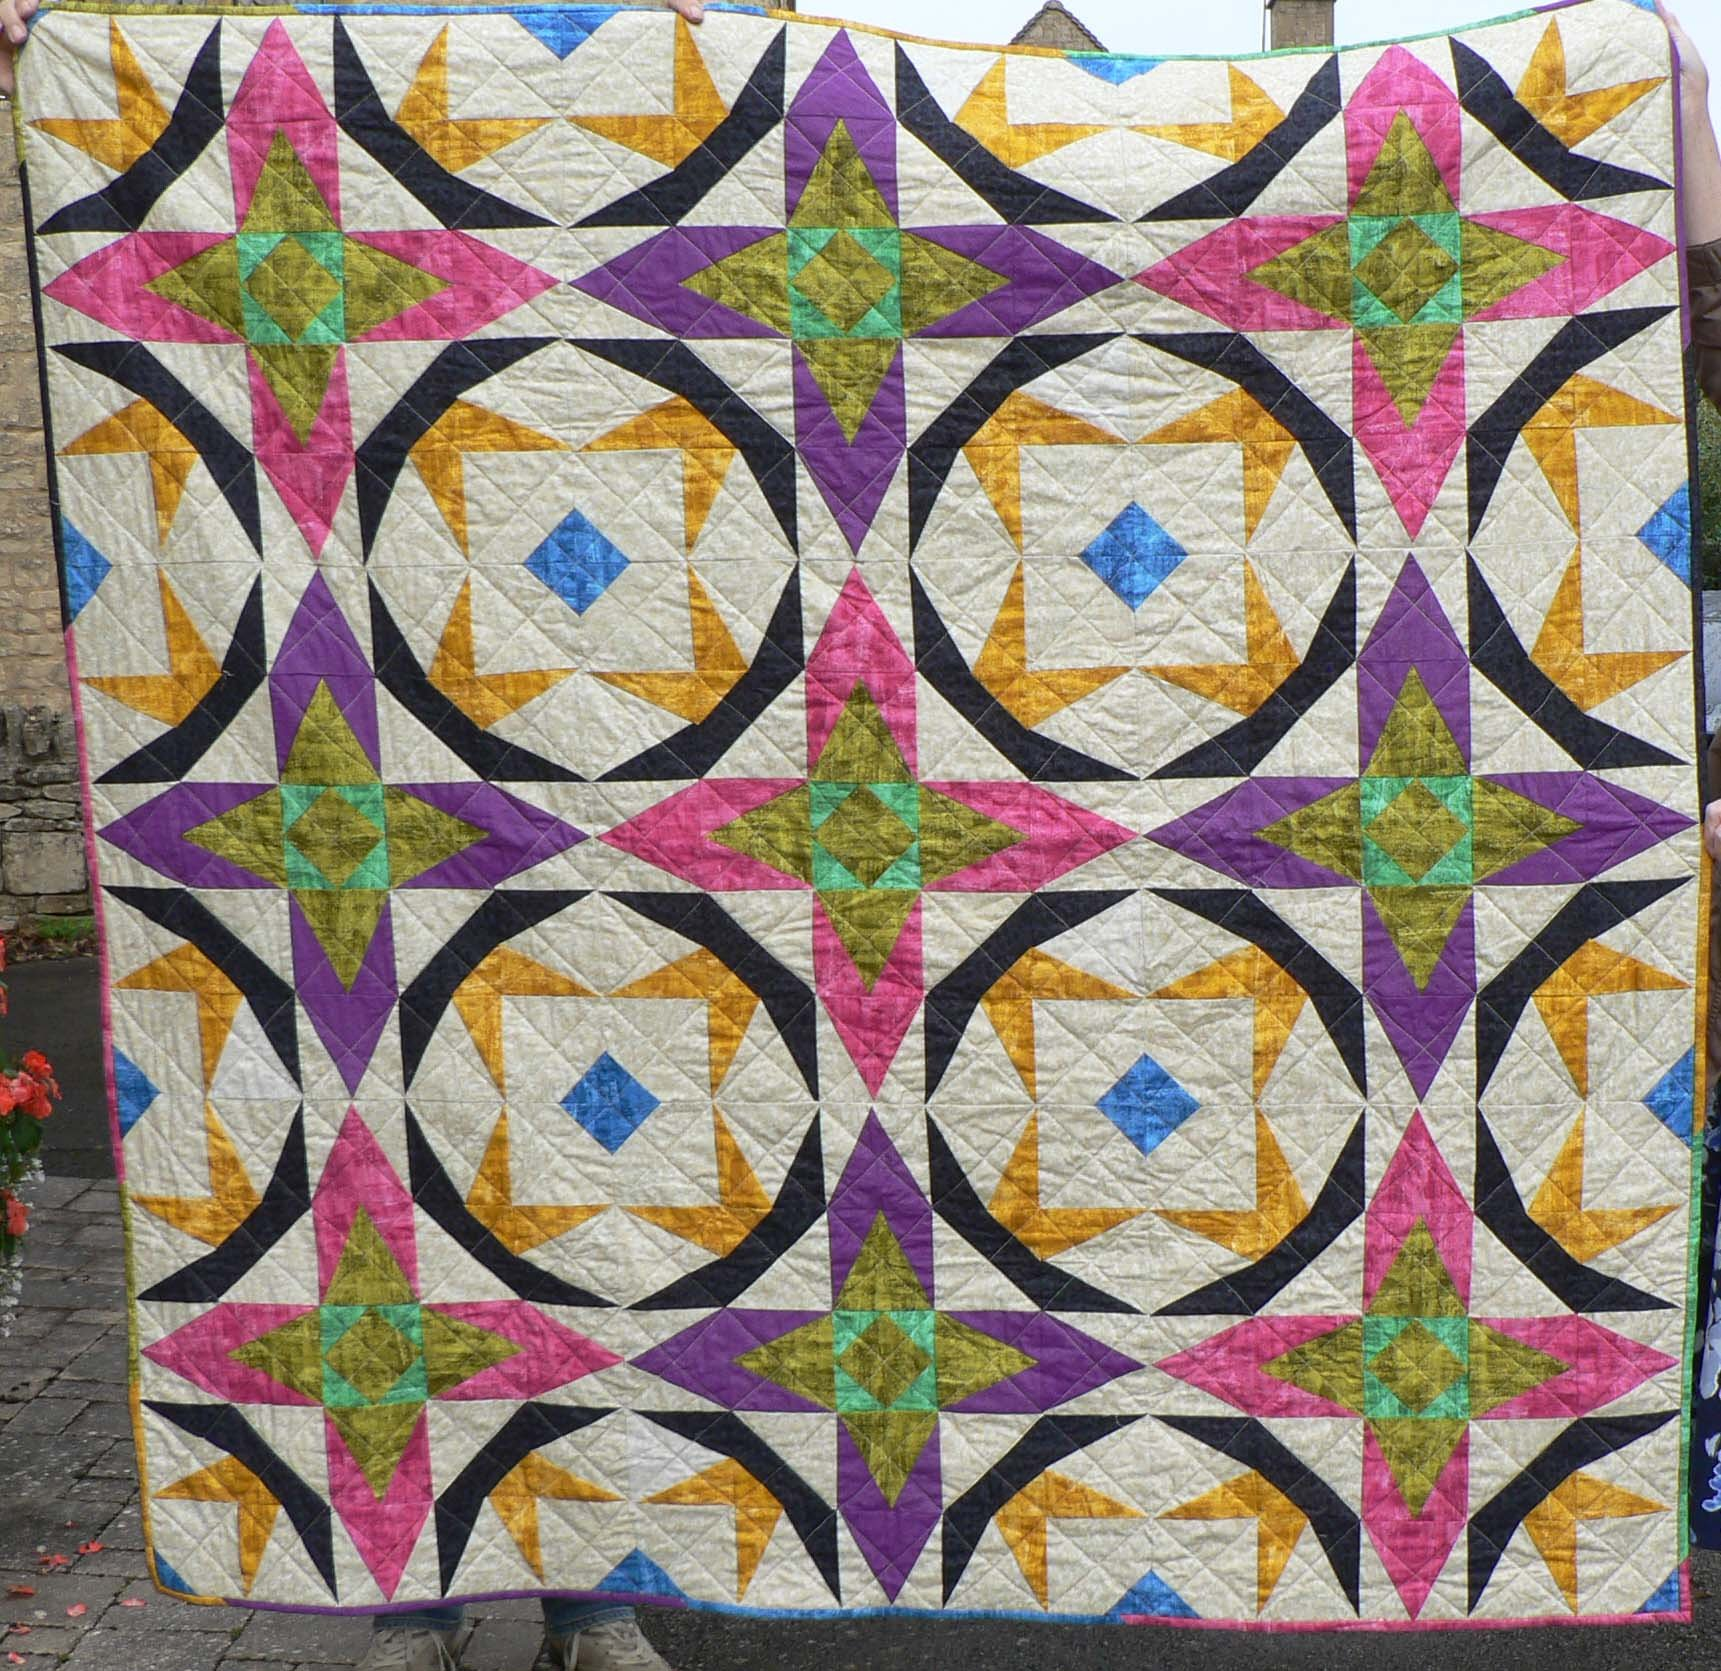 The quilt that Jane made for her grand-daughter